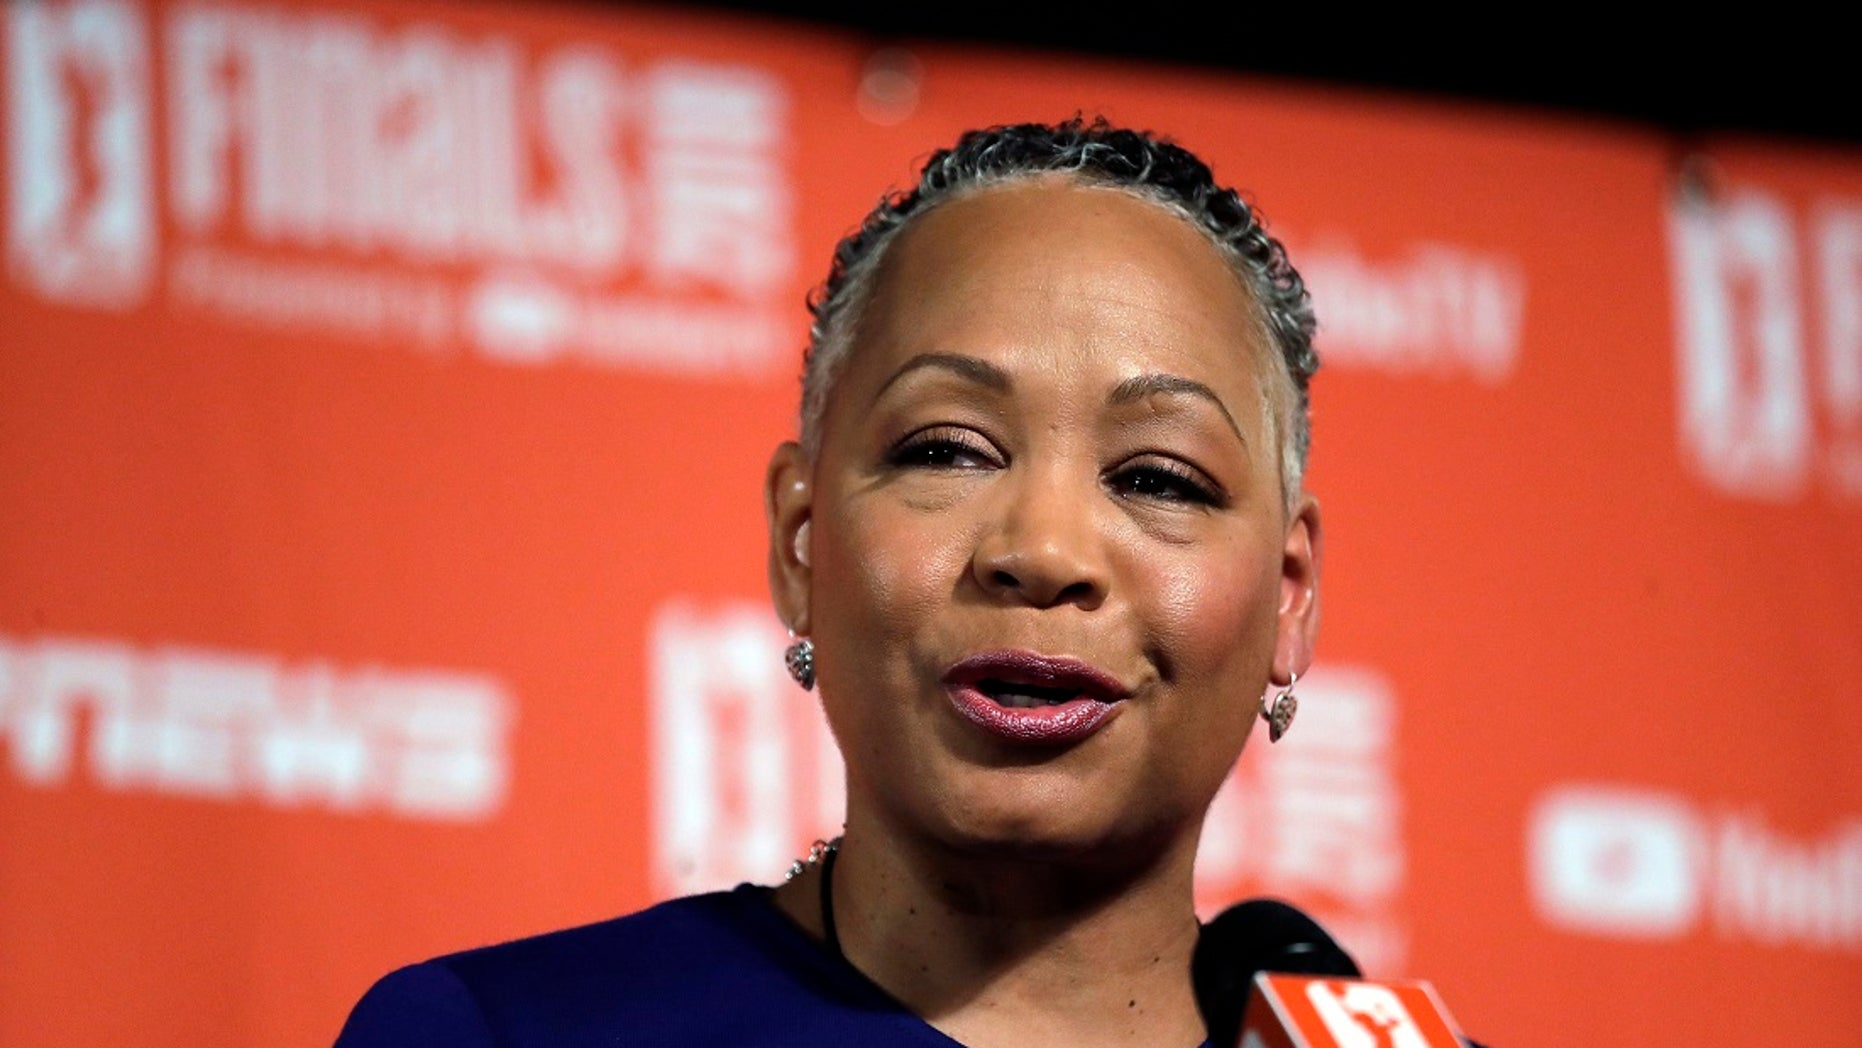 "Lisa Borders has resigned as president and CEO of Time & # 39; s Up Gender Equality Initiative, formed in 201<div class=""e3lan e3lan-in-post1""><script async src=""//pagead2.googlesyndication.com/pagead/js/adsbygoogle.js""></script>